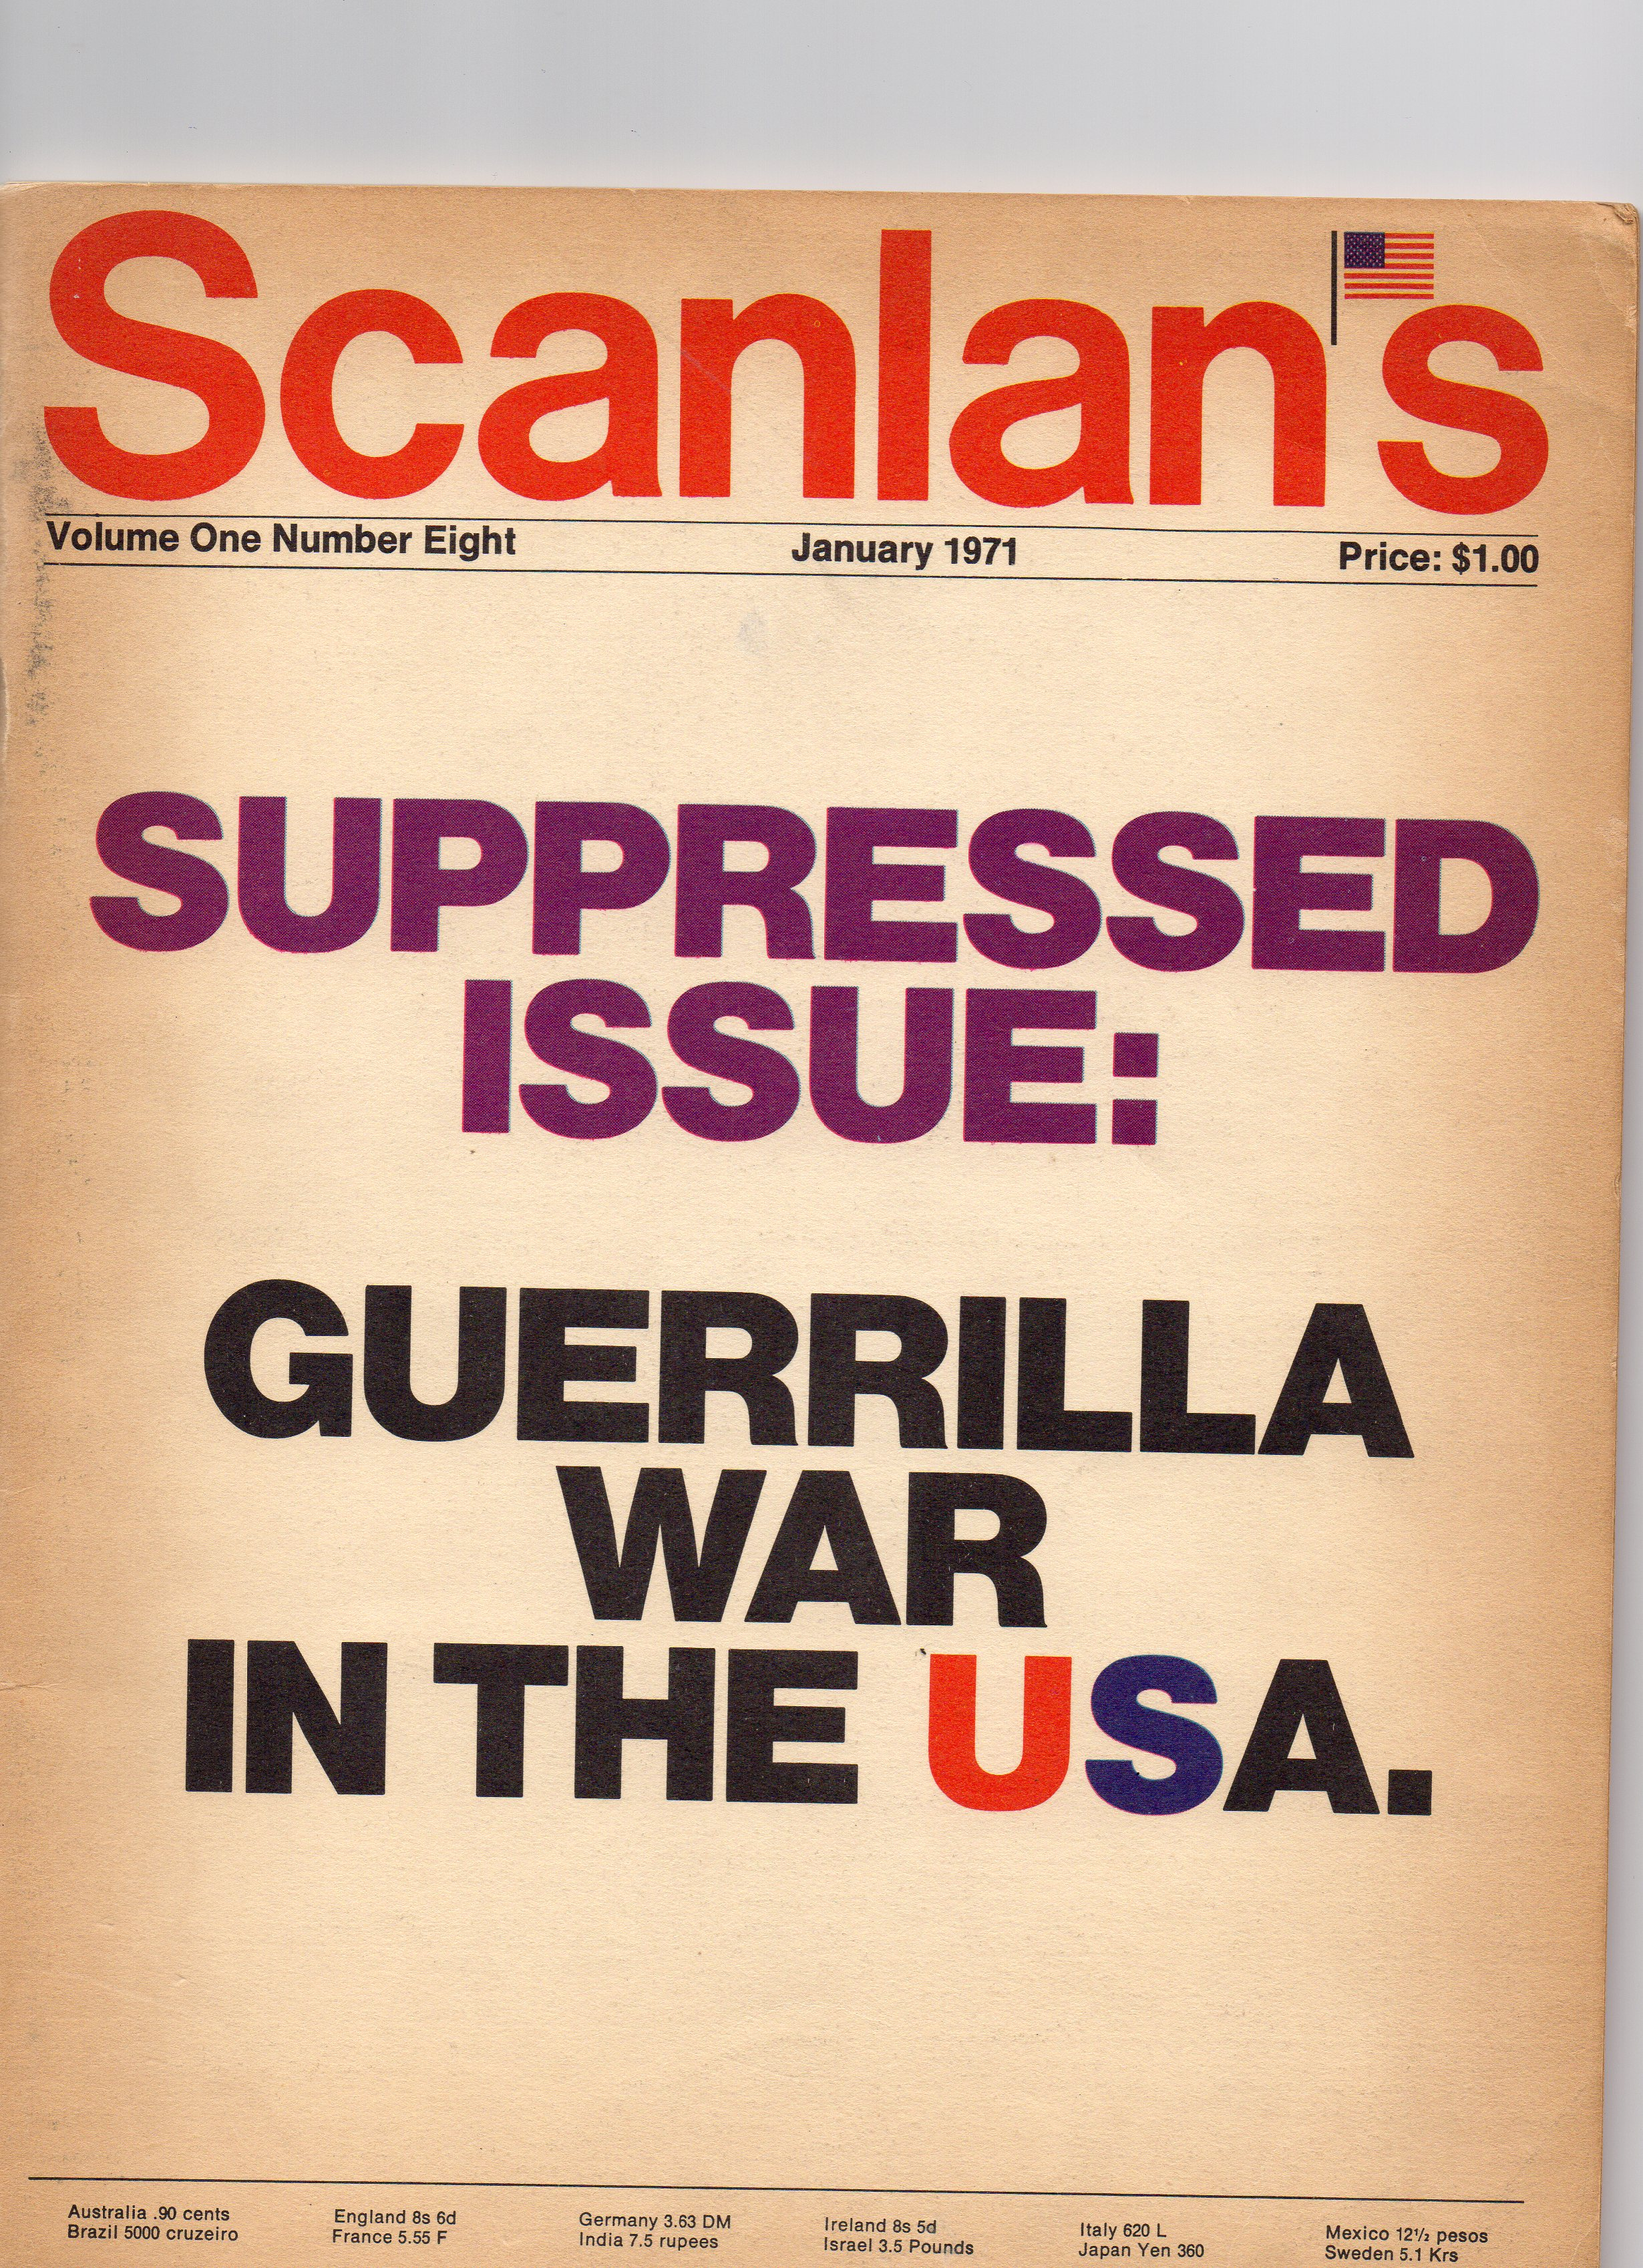 """Scanlan's Monthly 8. This was the last and mostly despicable issue of Scanlan's in which I had no hand in creating although I was there at the time. The editors explained the date thusly: """"This issue, Volume 1, No. 8, is now January 1971, and will appear on the newsstands in early December. Our last issue, Volume 1, No. 7, was dated September and was on newsstands during September. All subscribers will receive twelve full issues during the term of their subscription."""" Subscribers ate their hearts out. The magazine folded and I was out of work. From my personal collection."""